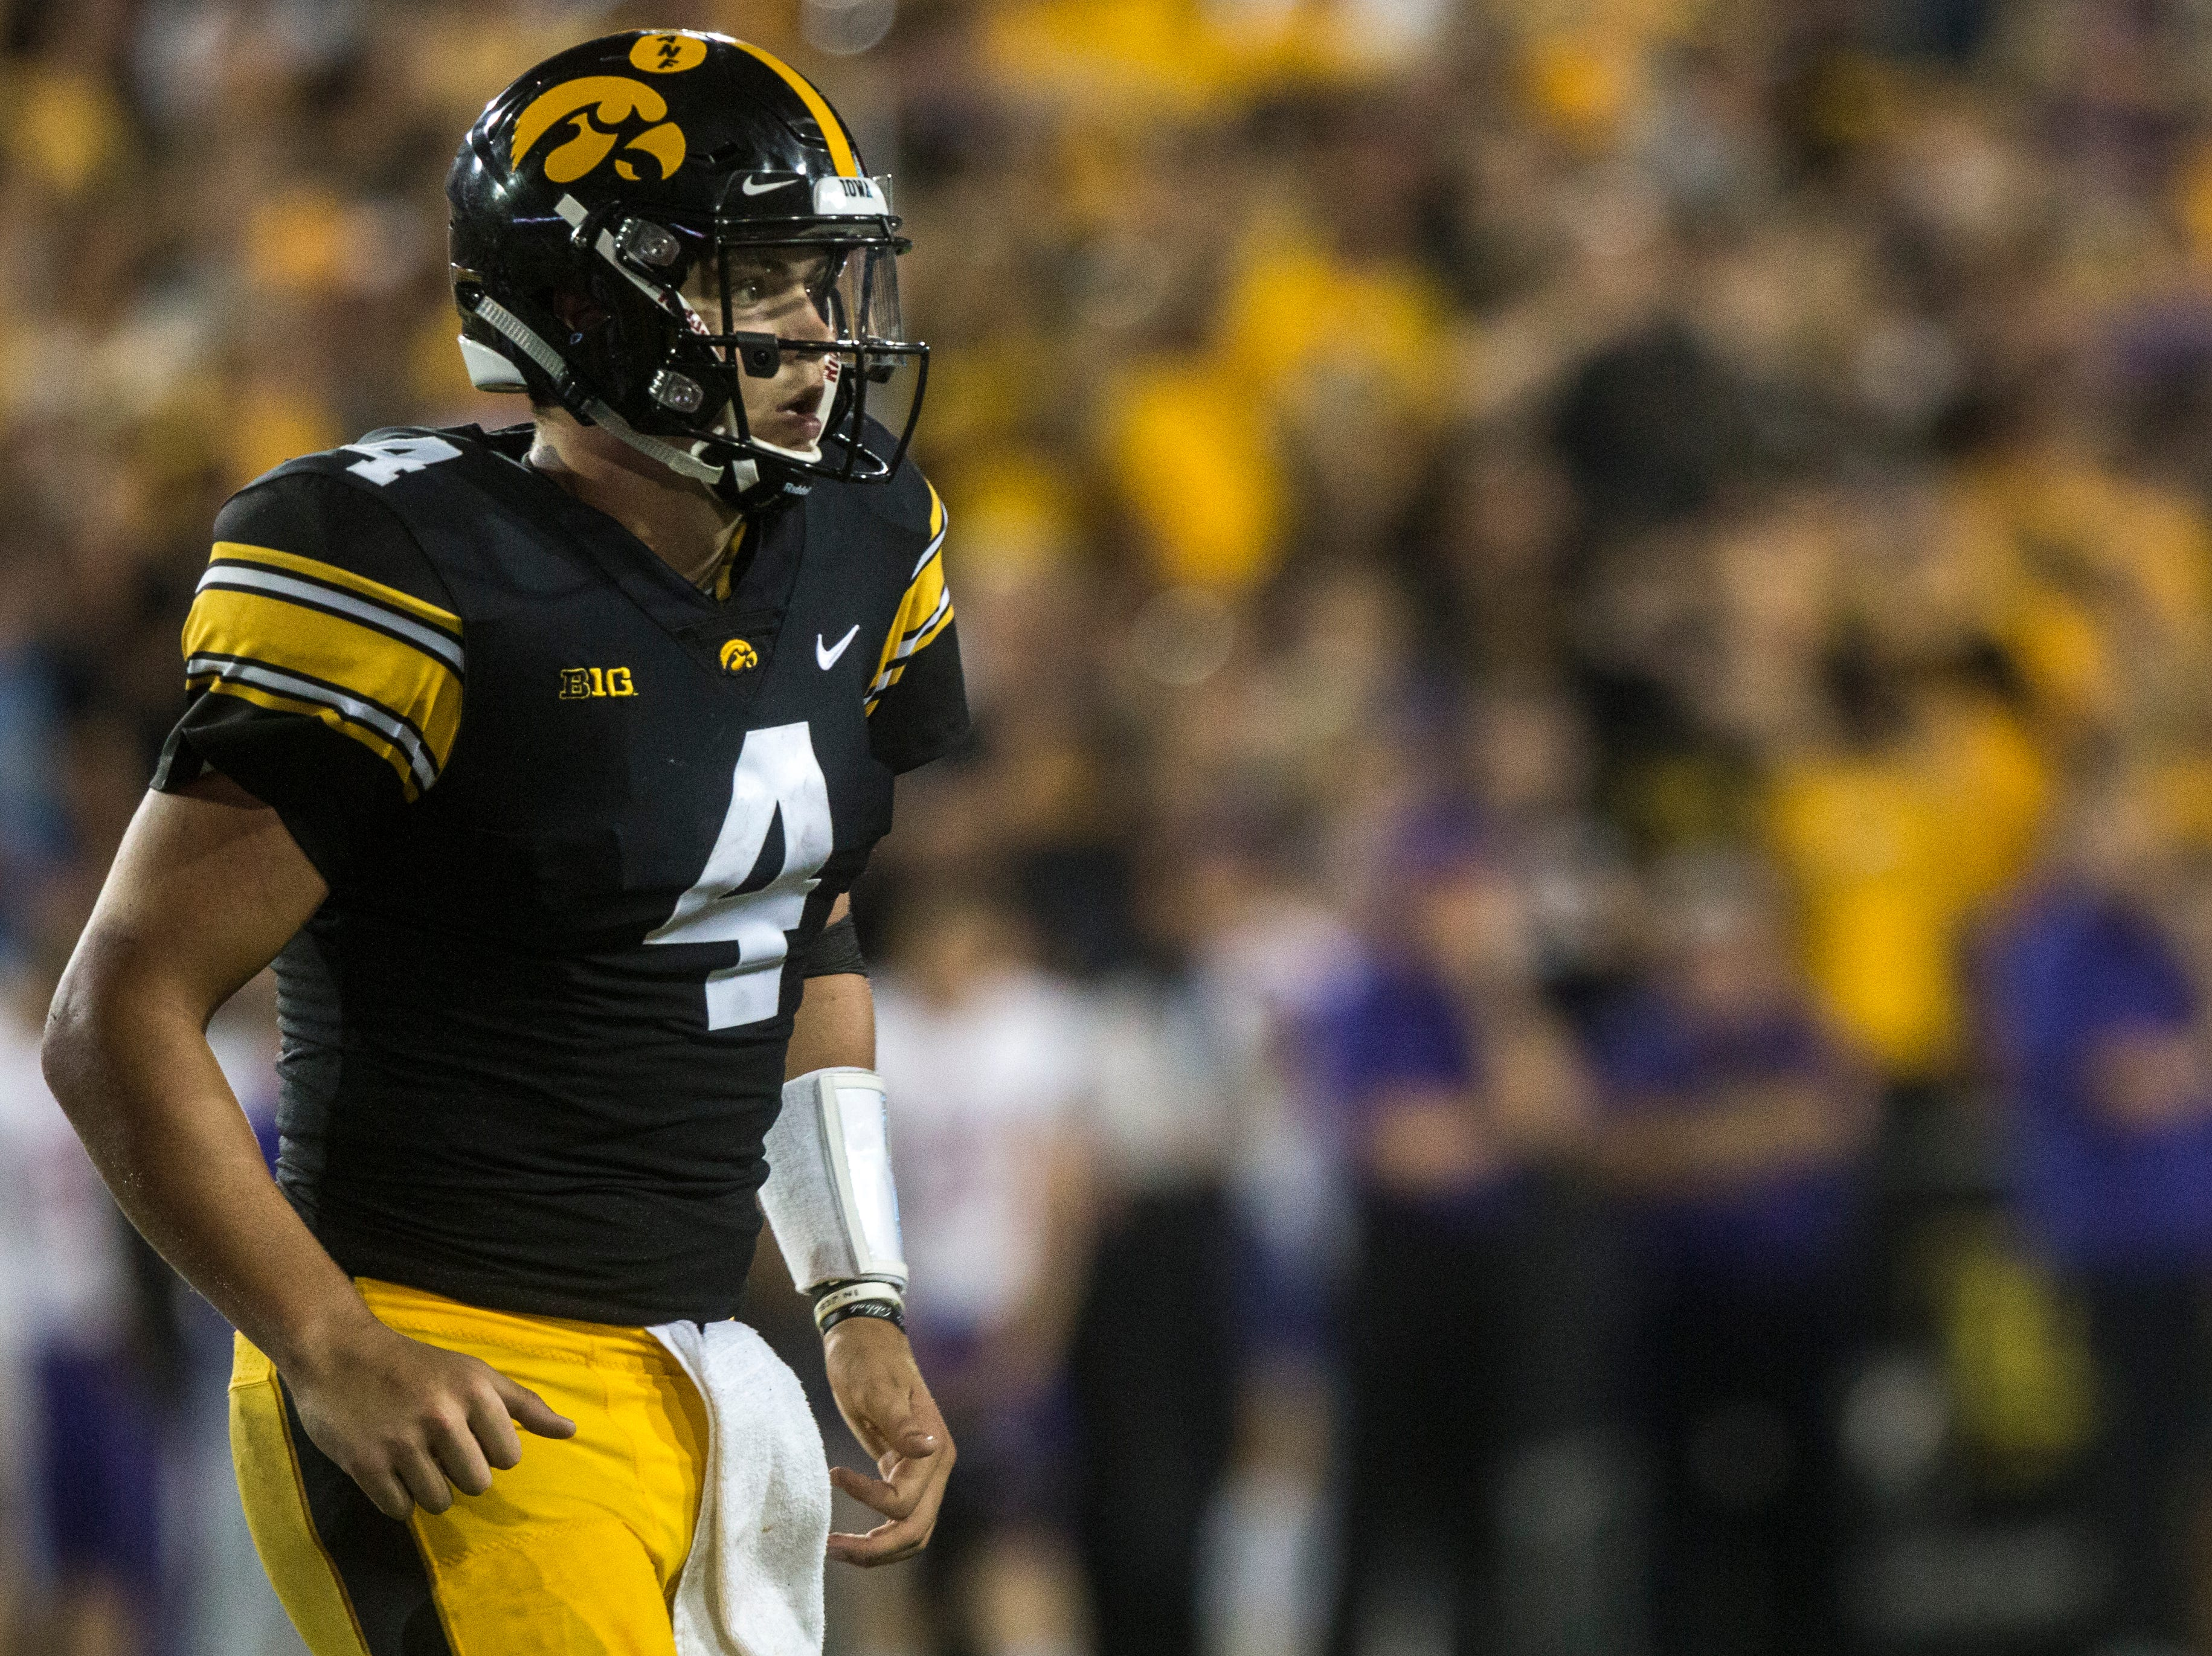 Iowa quarterback Nate Stanley (4) runs to the sideline during an NCAA football game on Saturday, Sept. 15, 2018, at Kinnick Stadium in Iowa City.